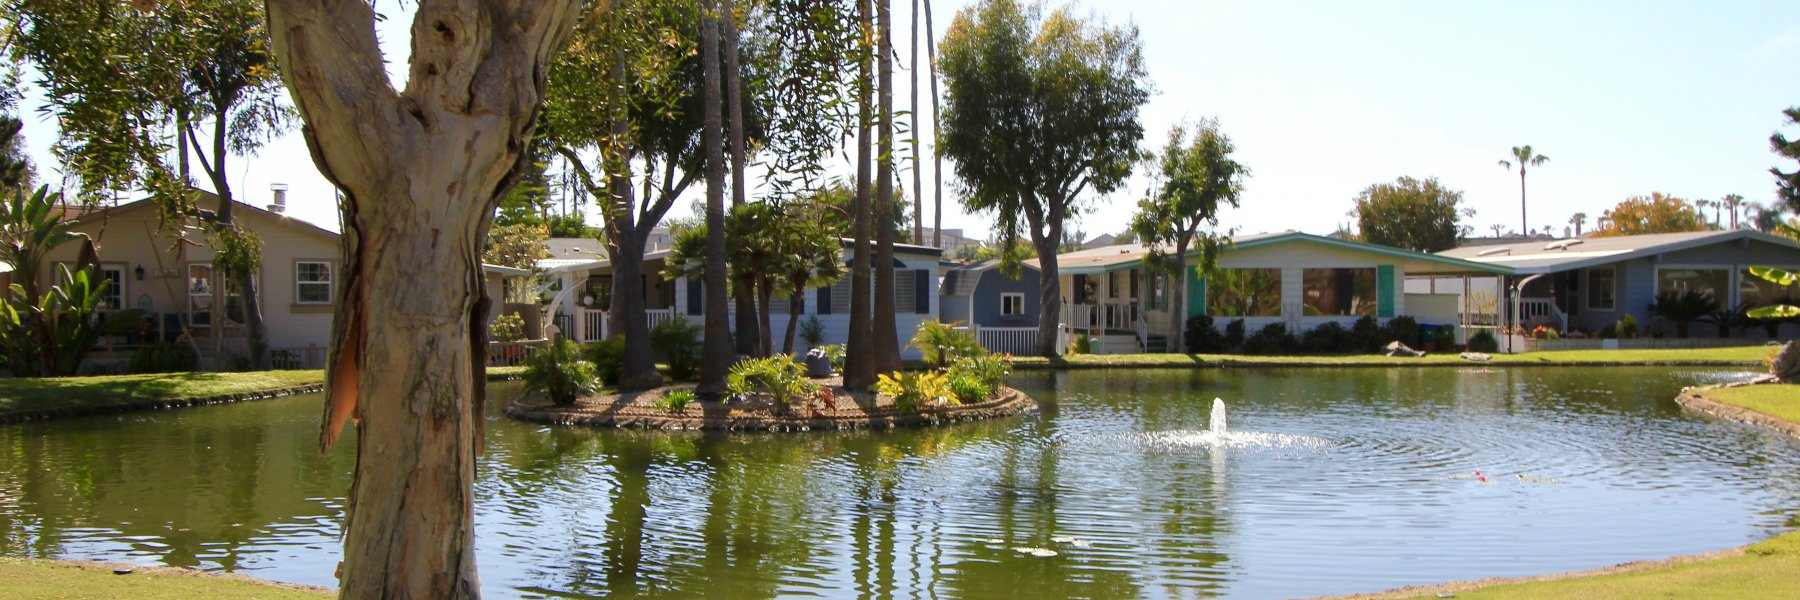 Lakeshore Gardens is a community of homes in Carlsbad California